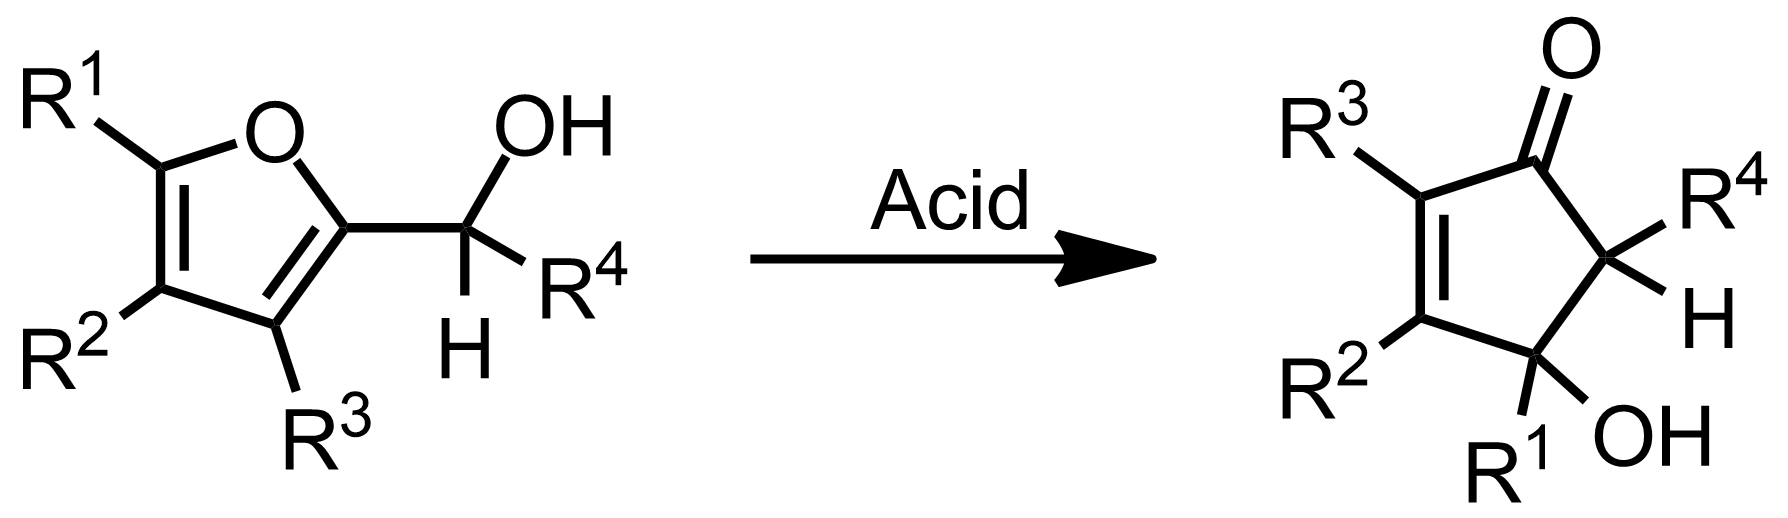 Schematic representation of the Piancatelli Rearrangement.